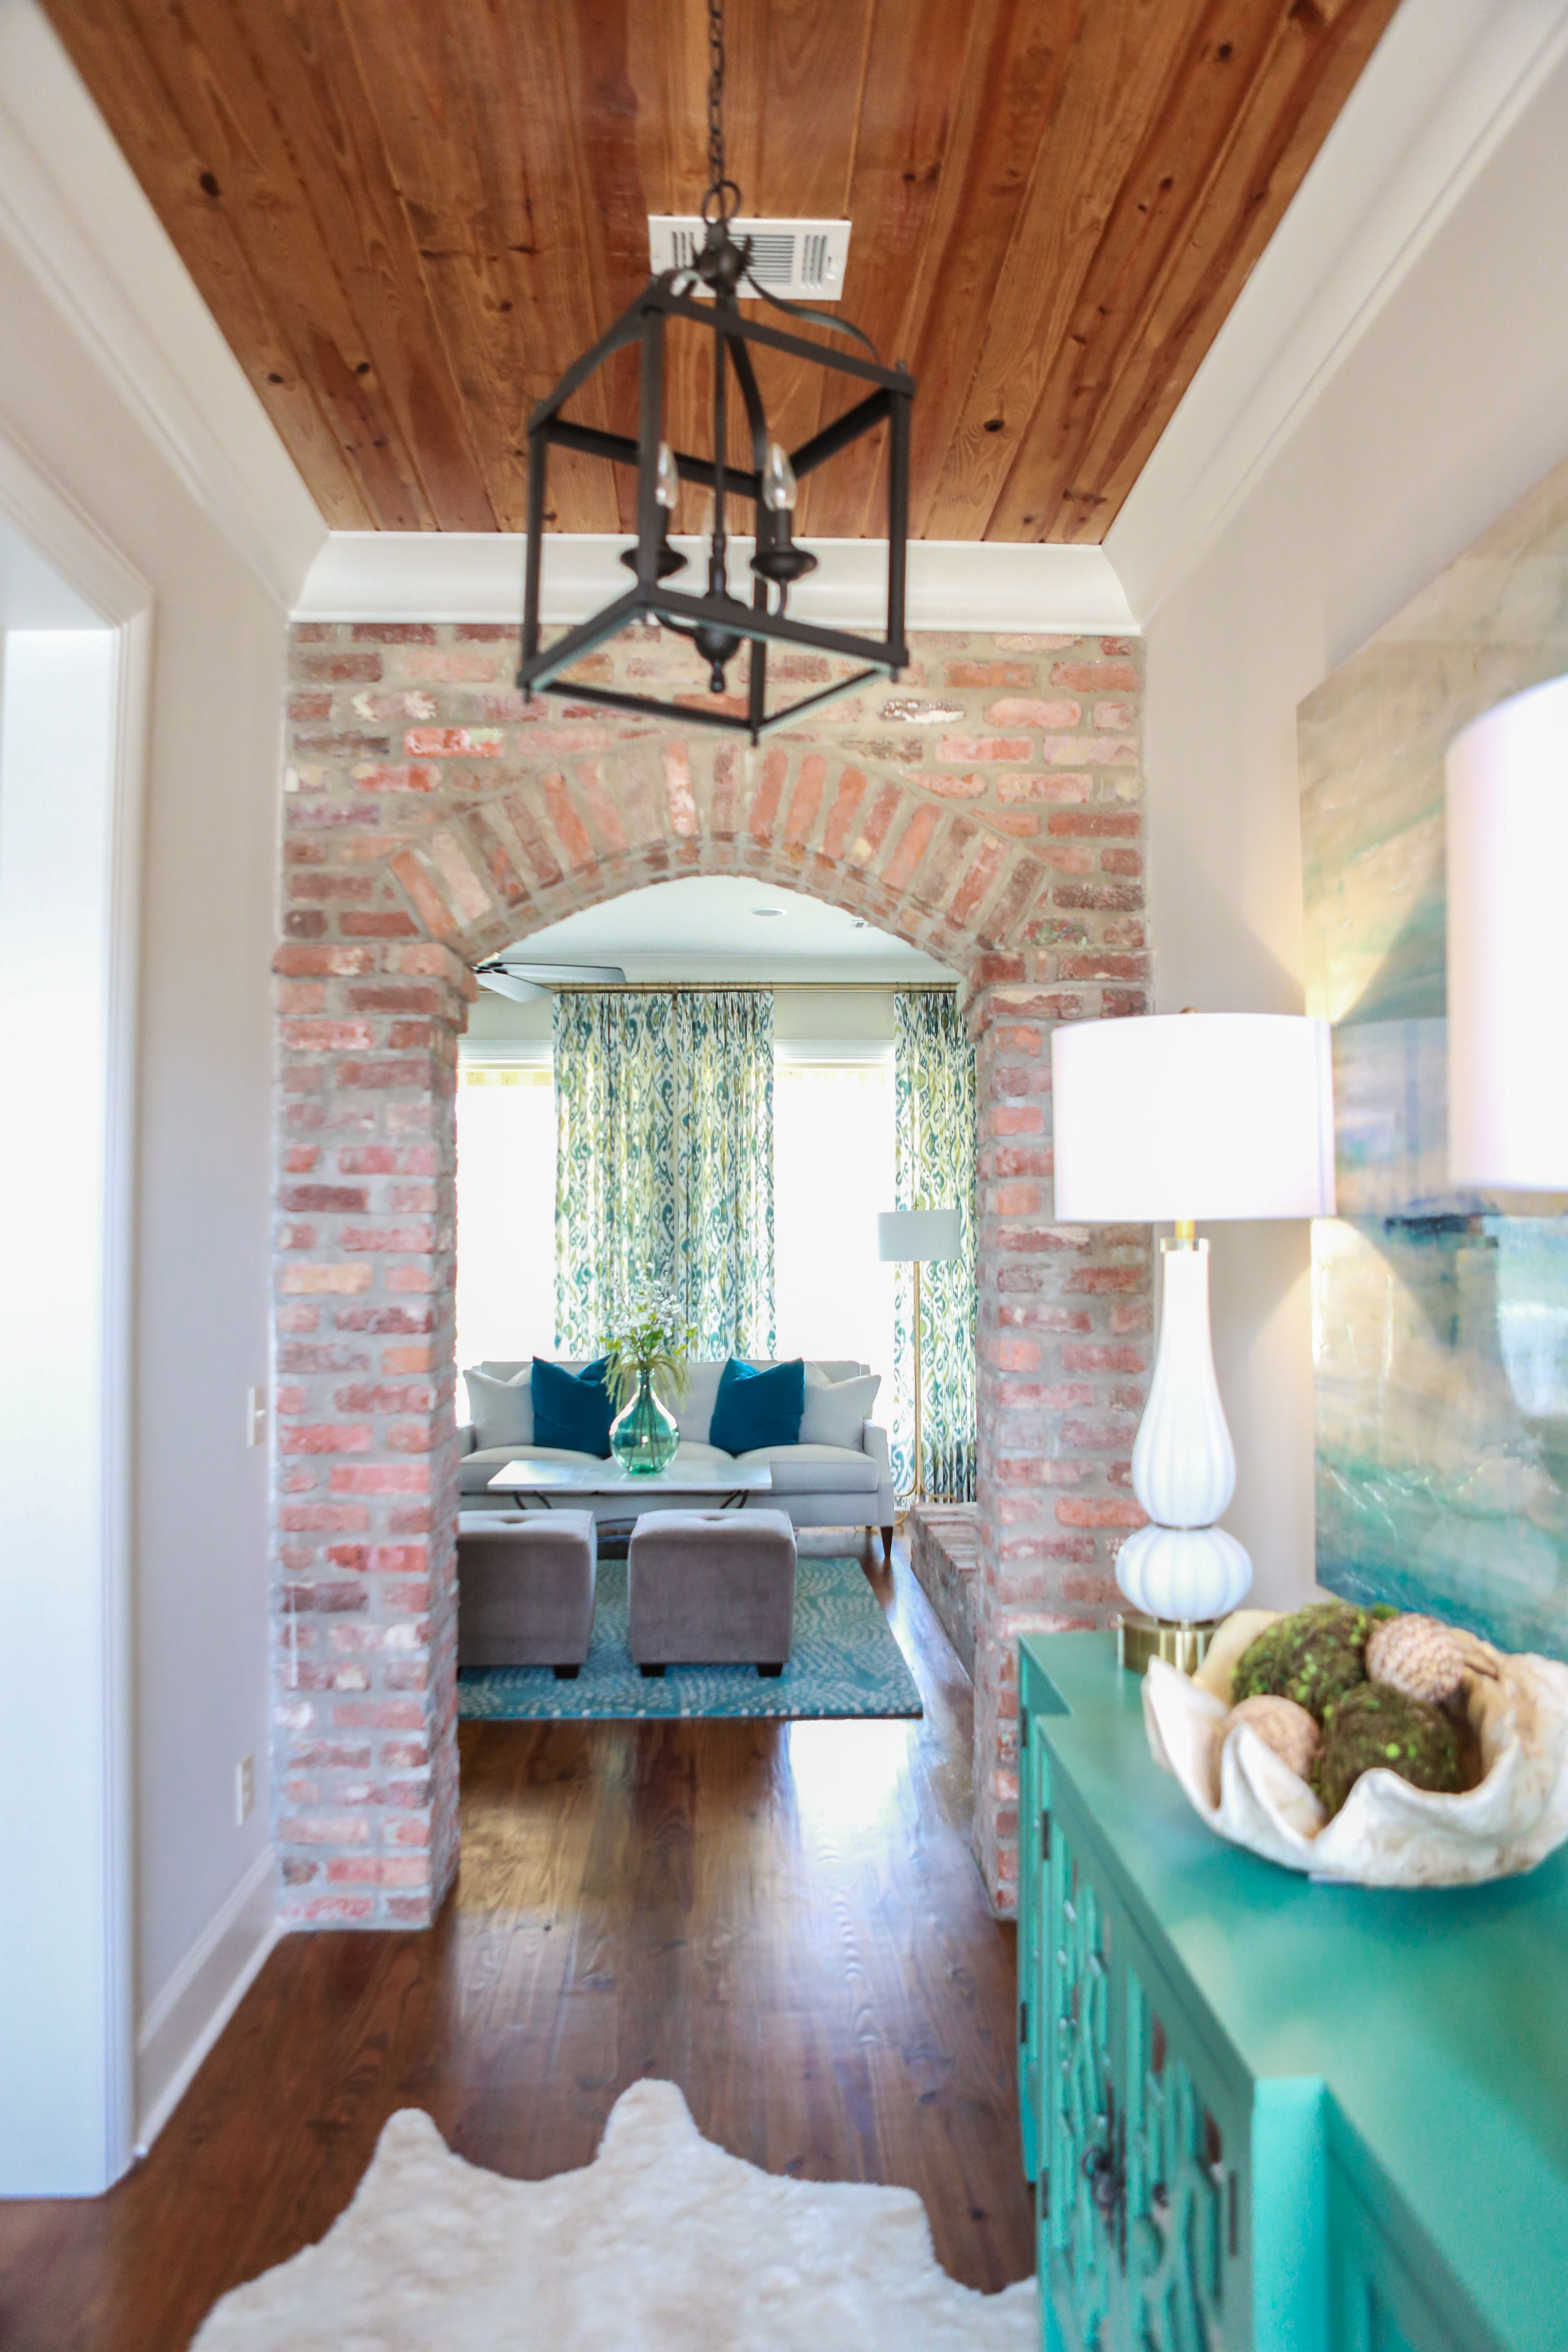 Brick wall with arched door. Warm wood ceiling with white trim. Turquoise